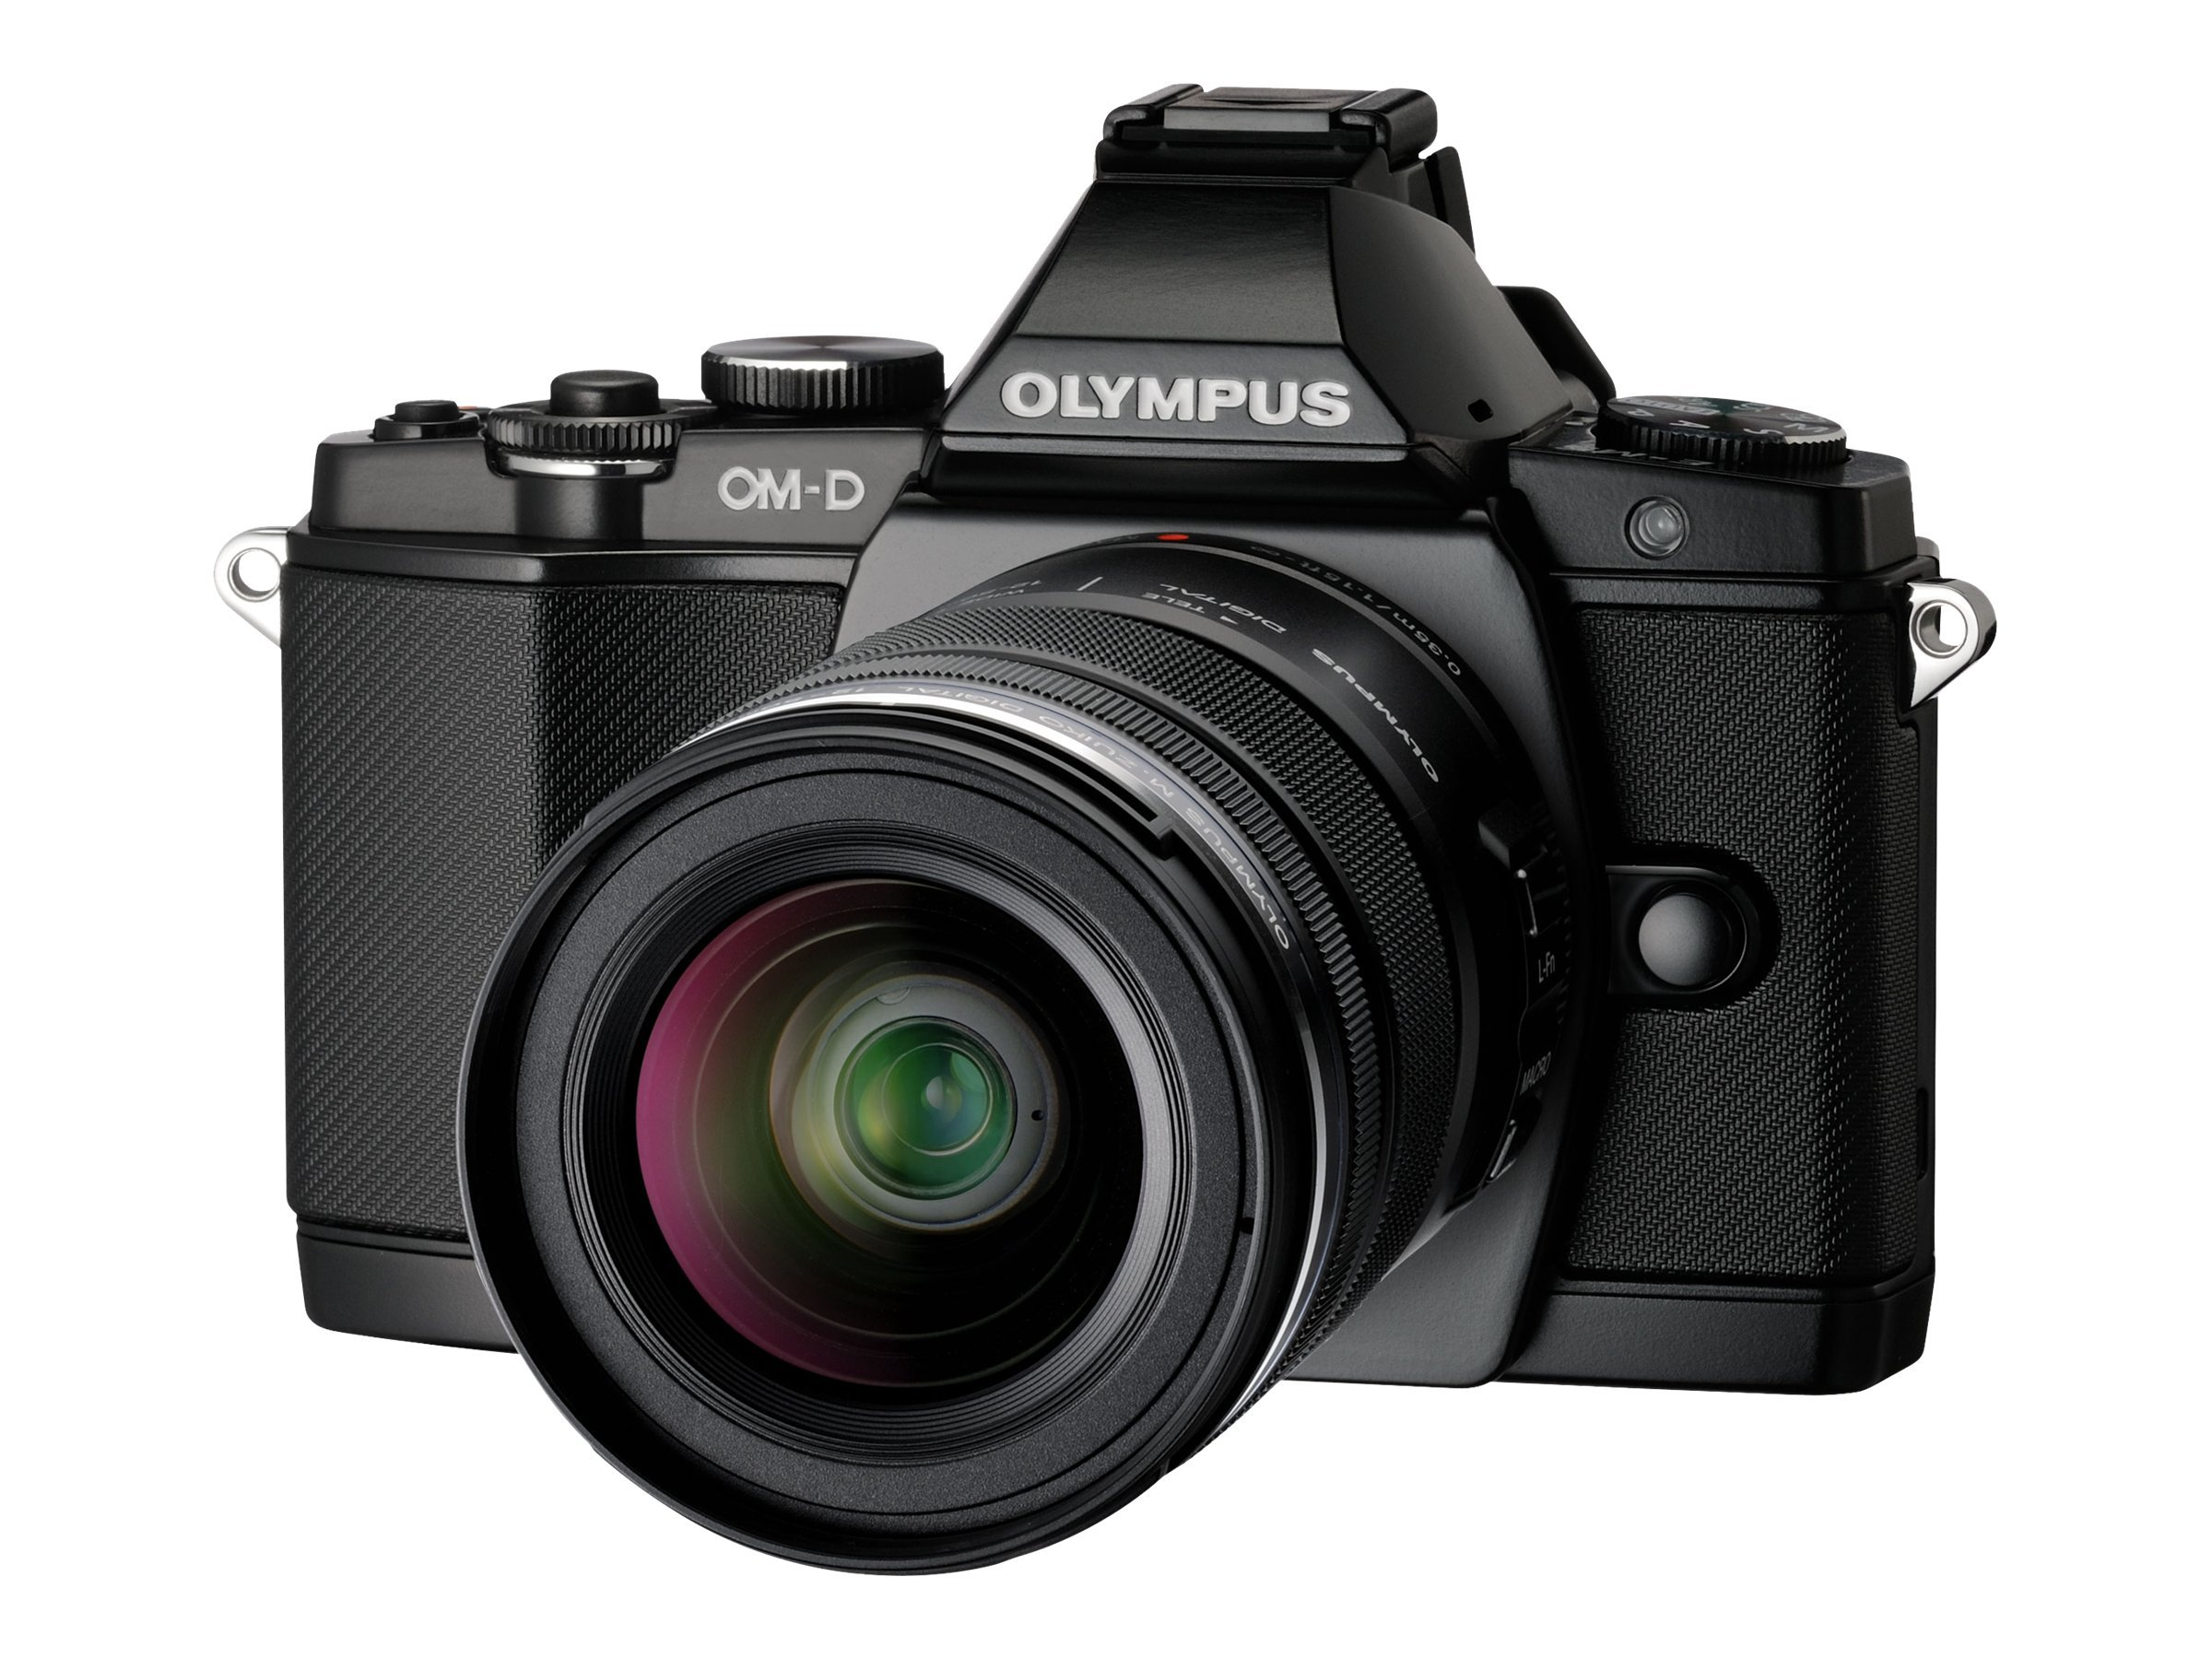 Olympus OM-D E-M5 Micro Four Thirds Digital Camera with 14-42mm Lens, Black